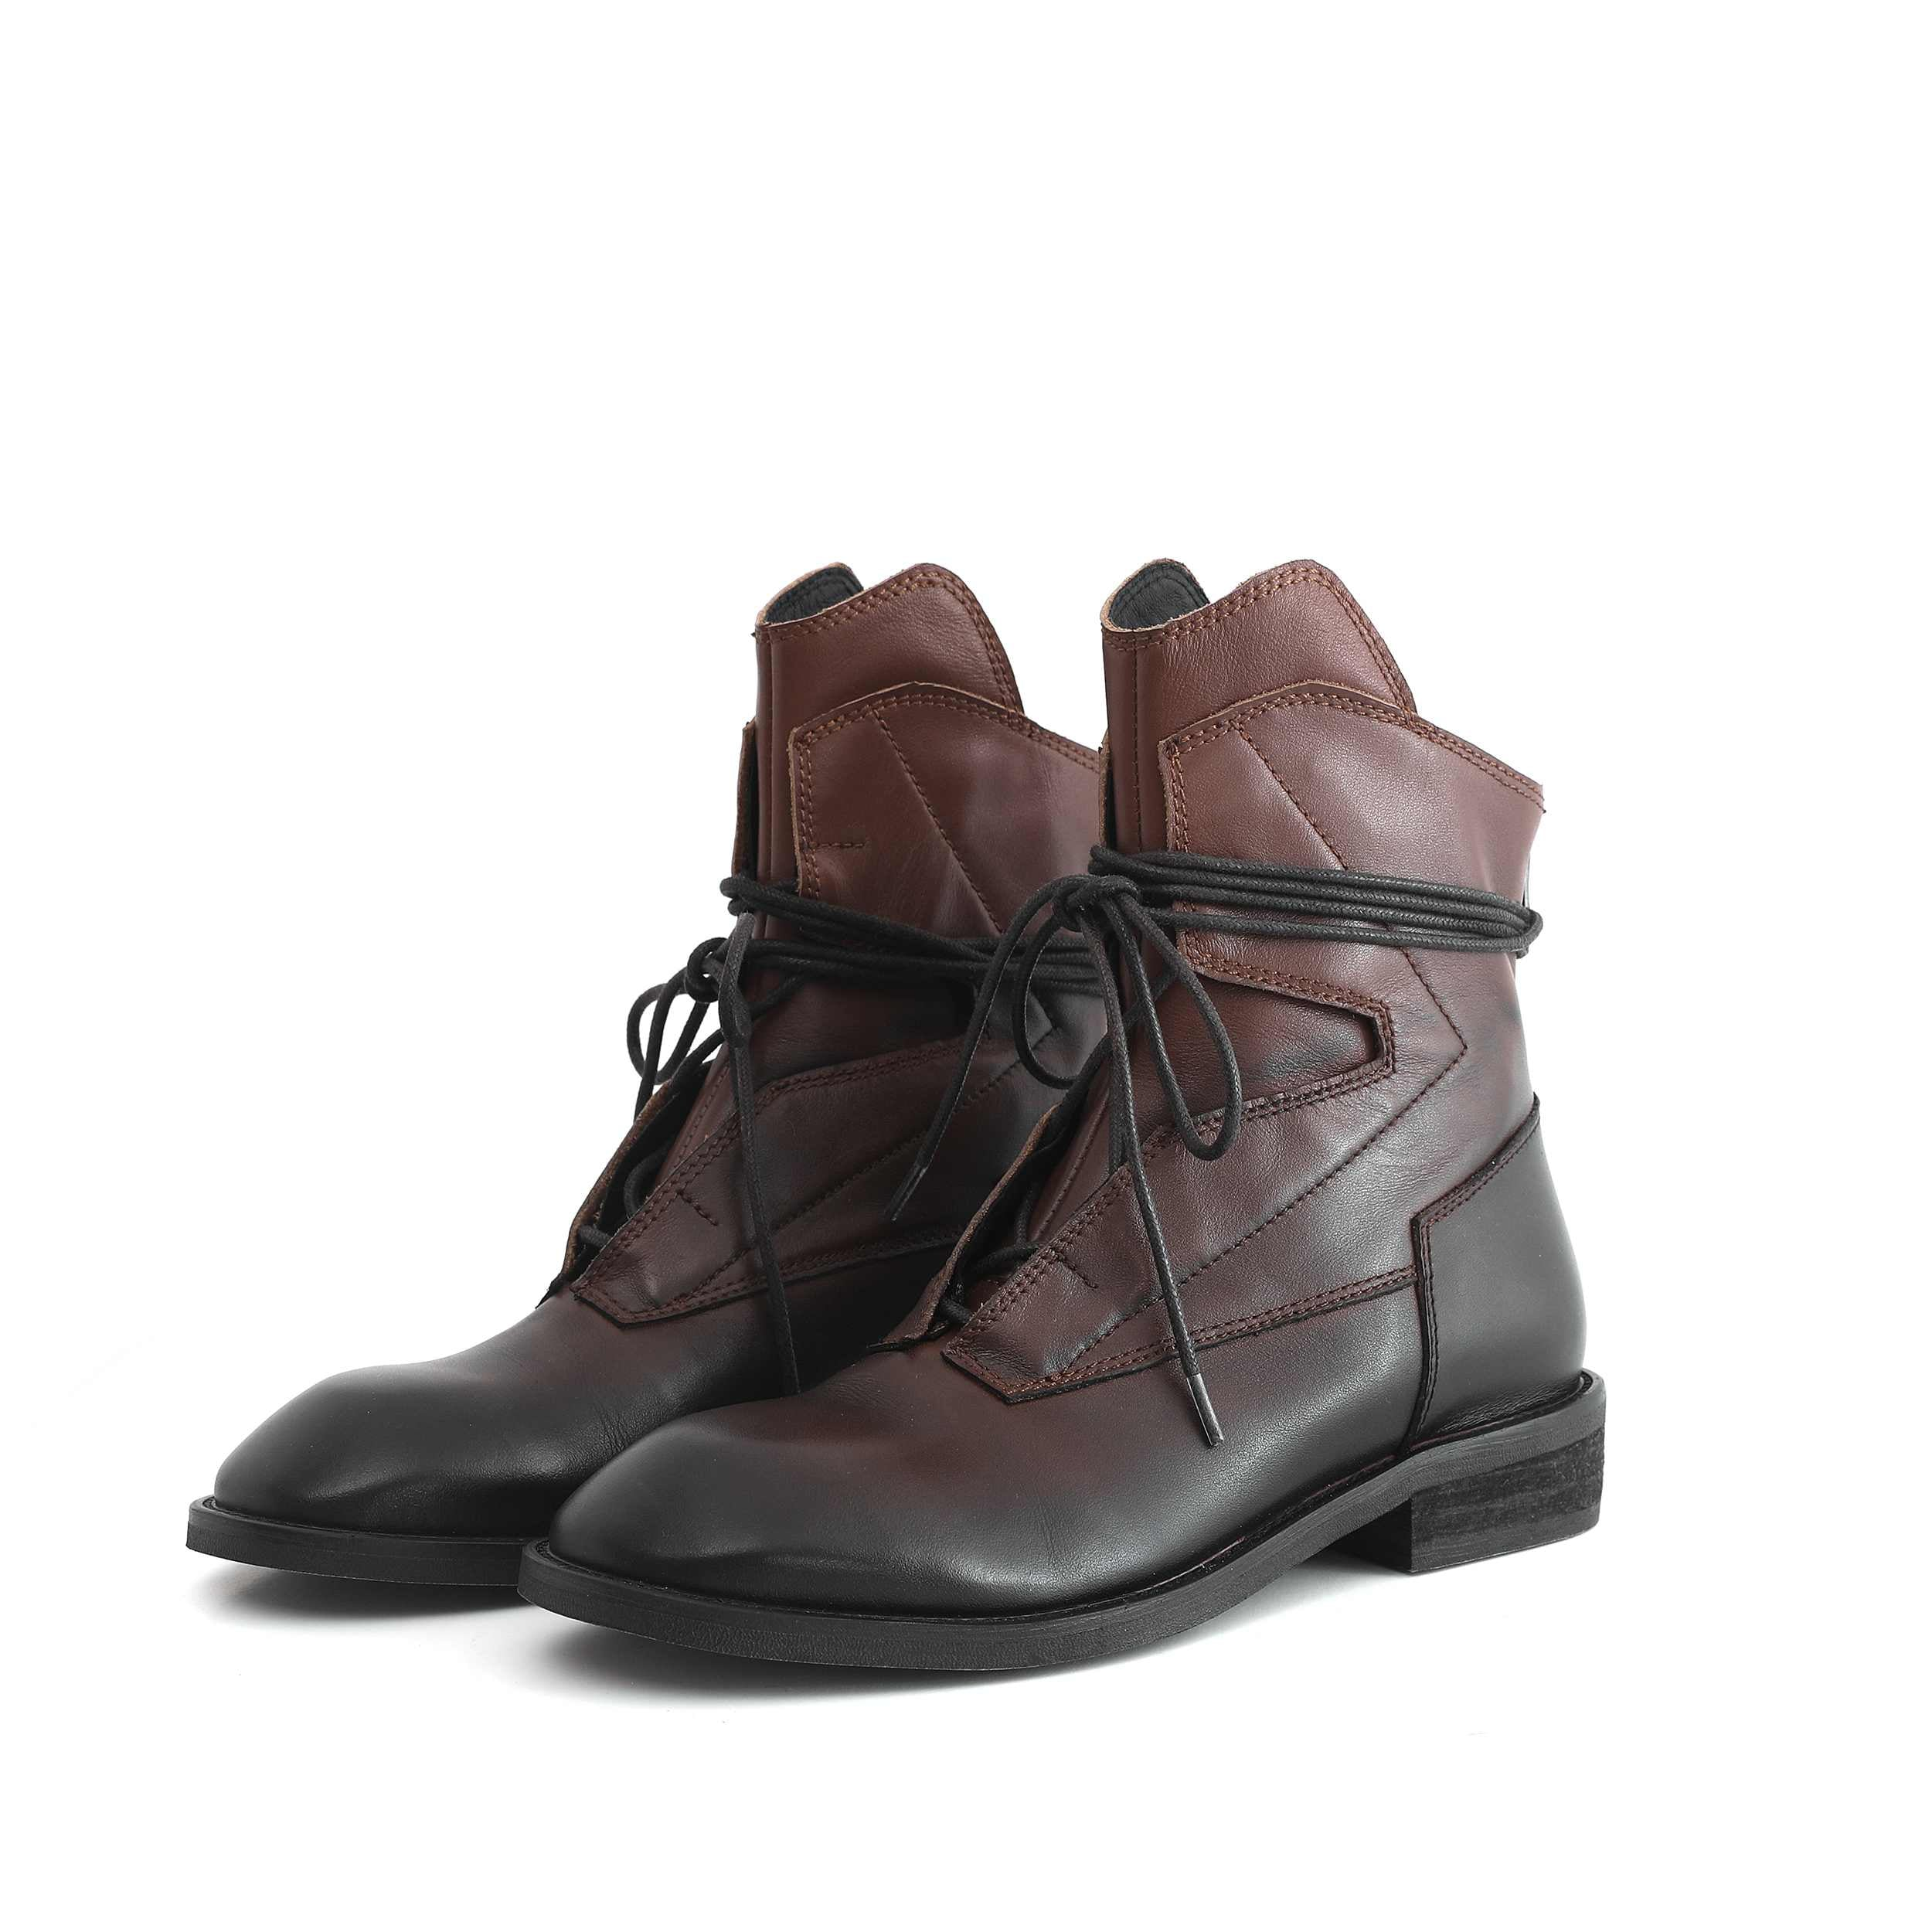 genuine leather leisure boots round toe med heels winter women fashion lace up rock ankle boots